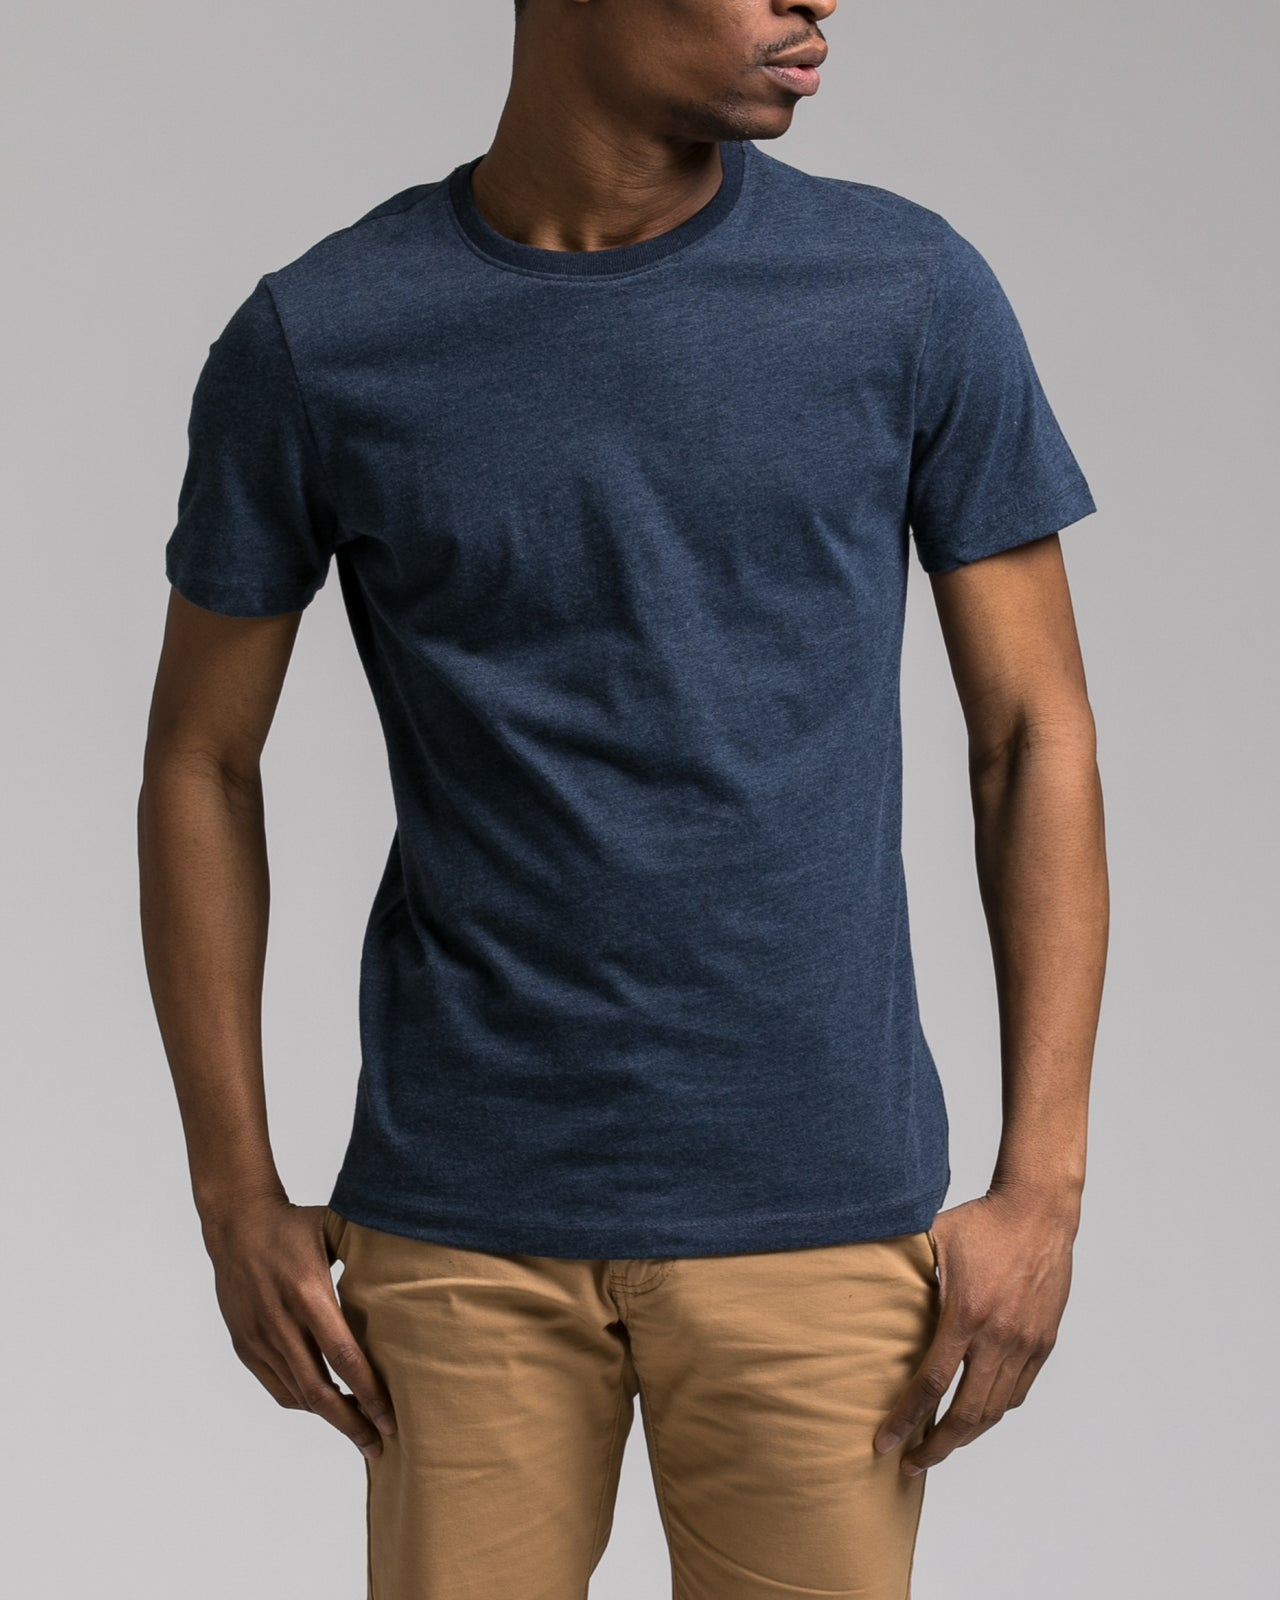 Slim Tee - Color: Heather Navy | Blue